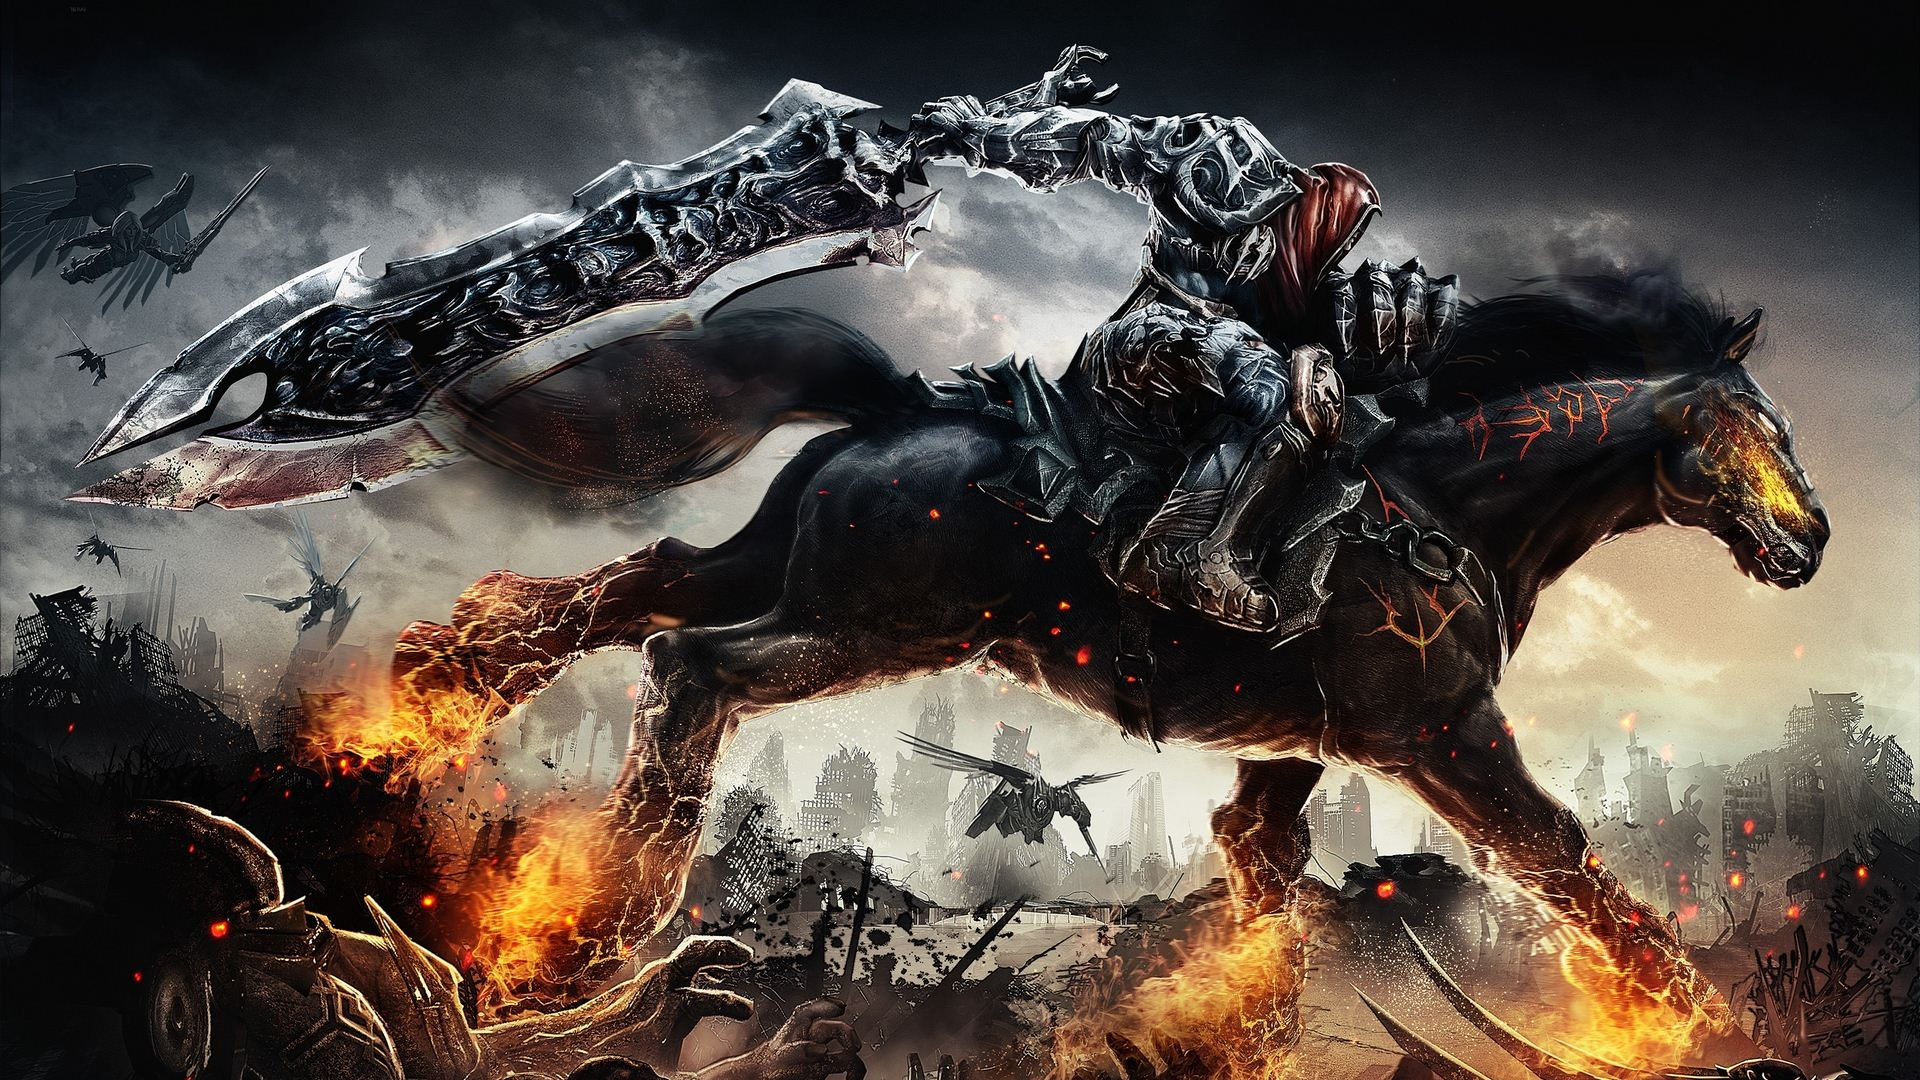 darksiders wrath of war wallpaper [1920x1080] : wallpaper